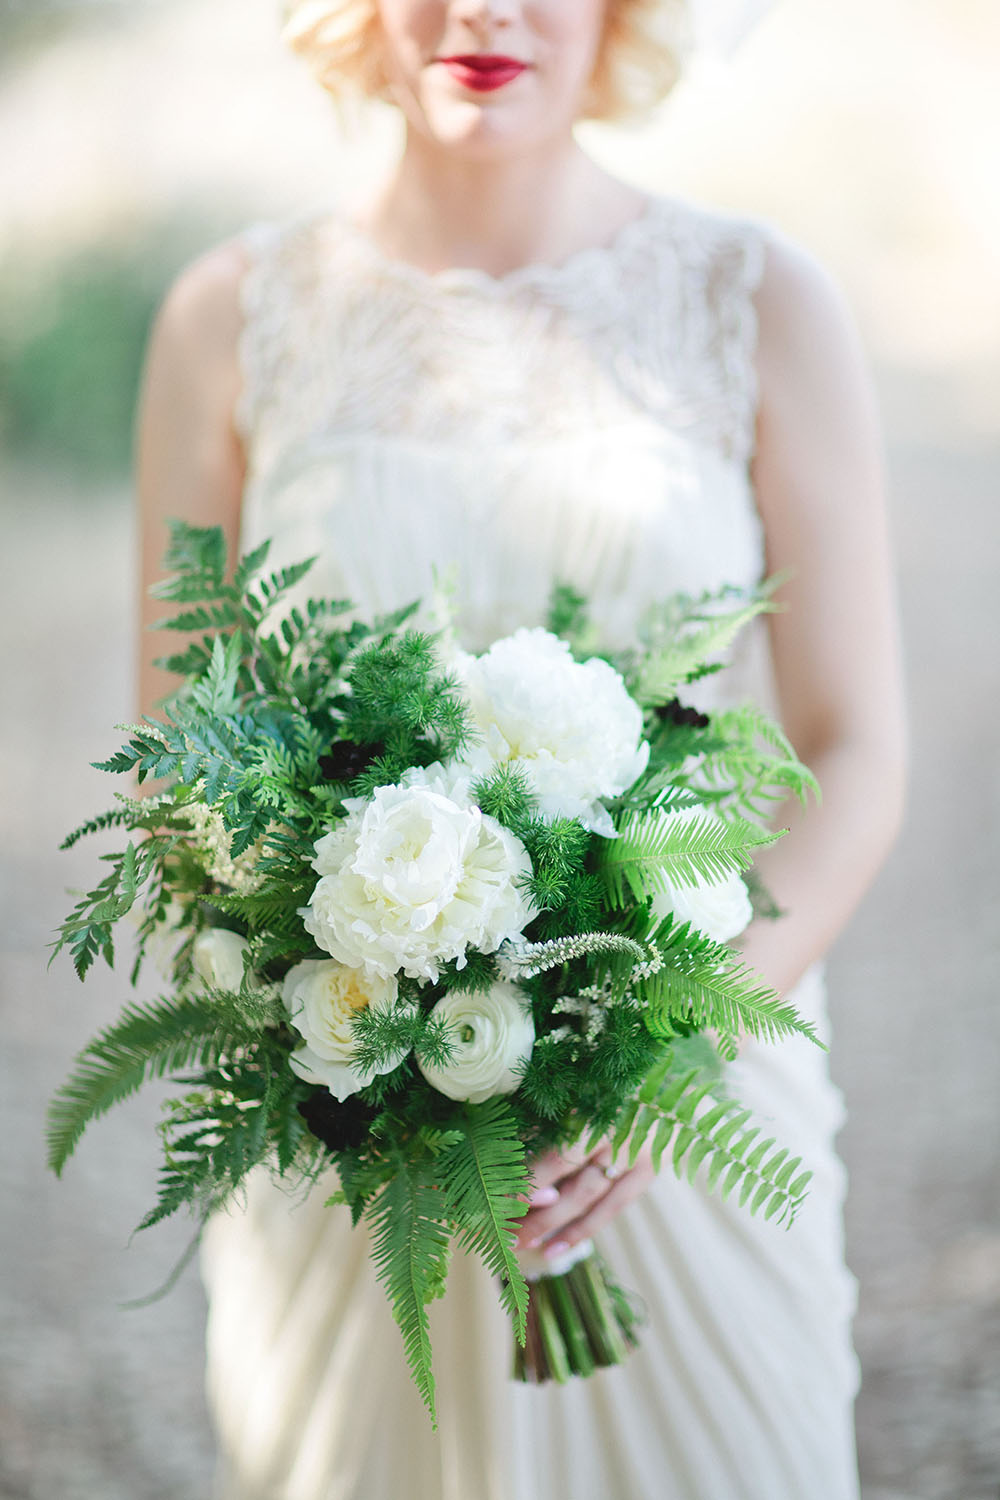 Fern Wedding Bouquet with Peonies and Ranunculus